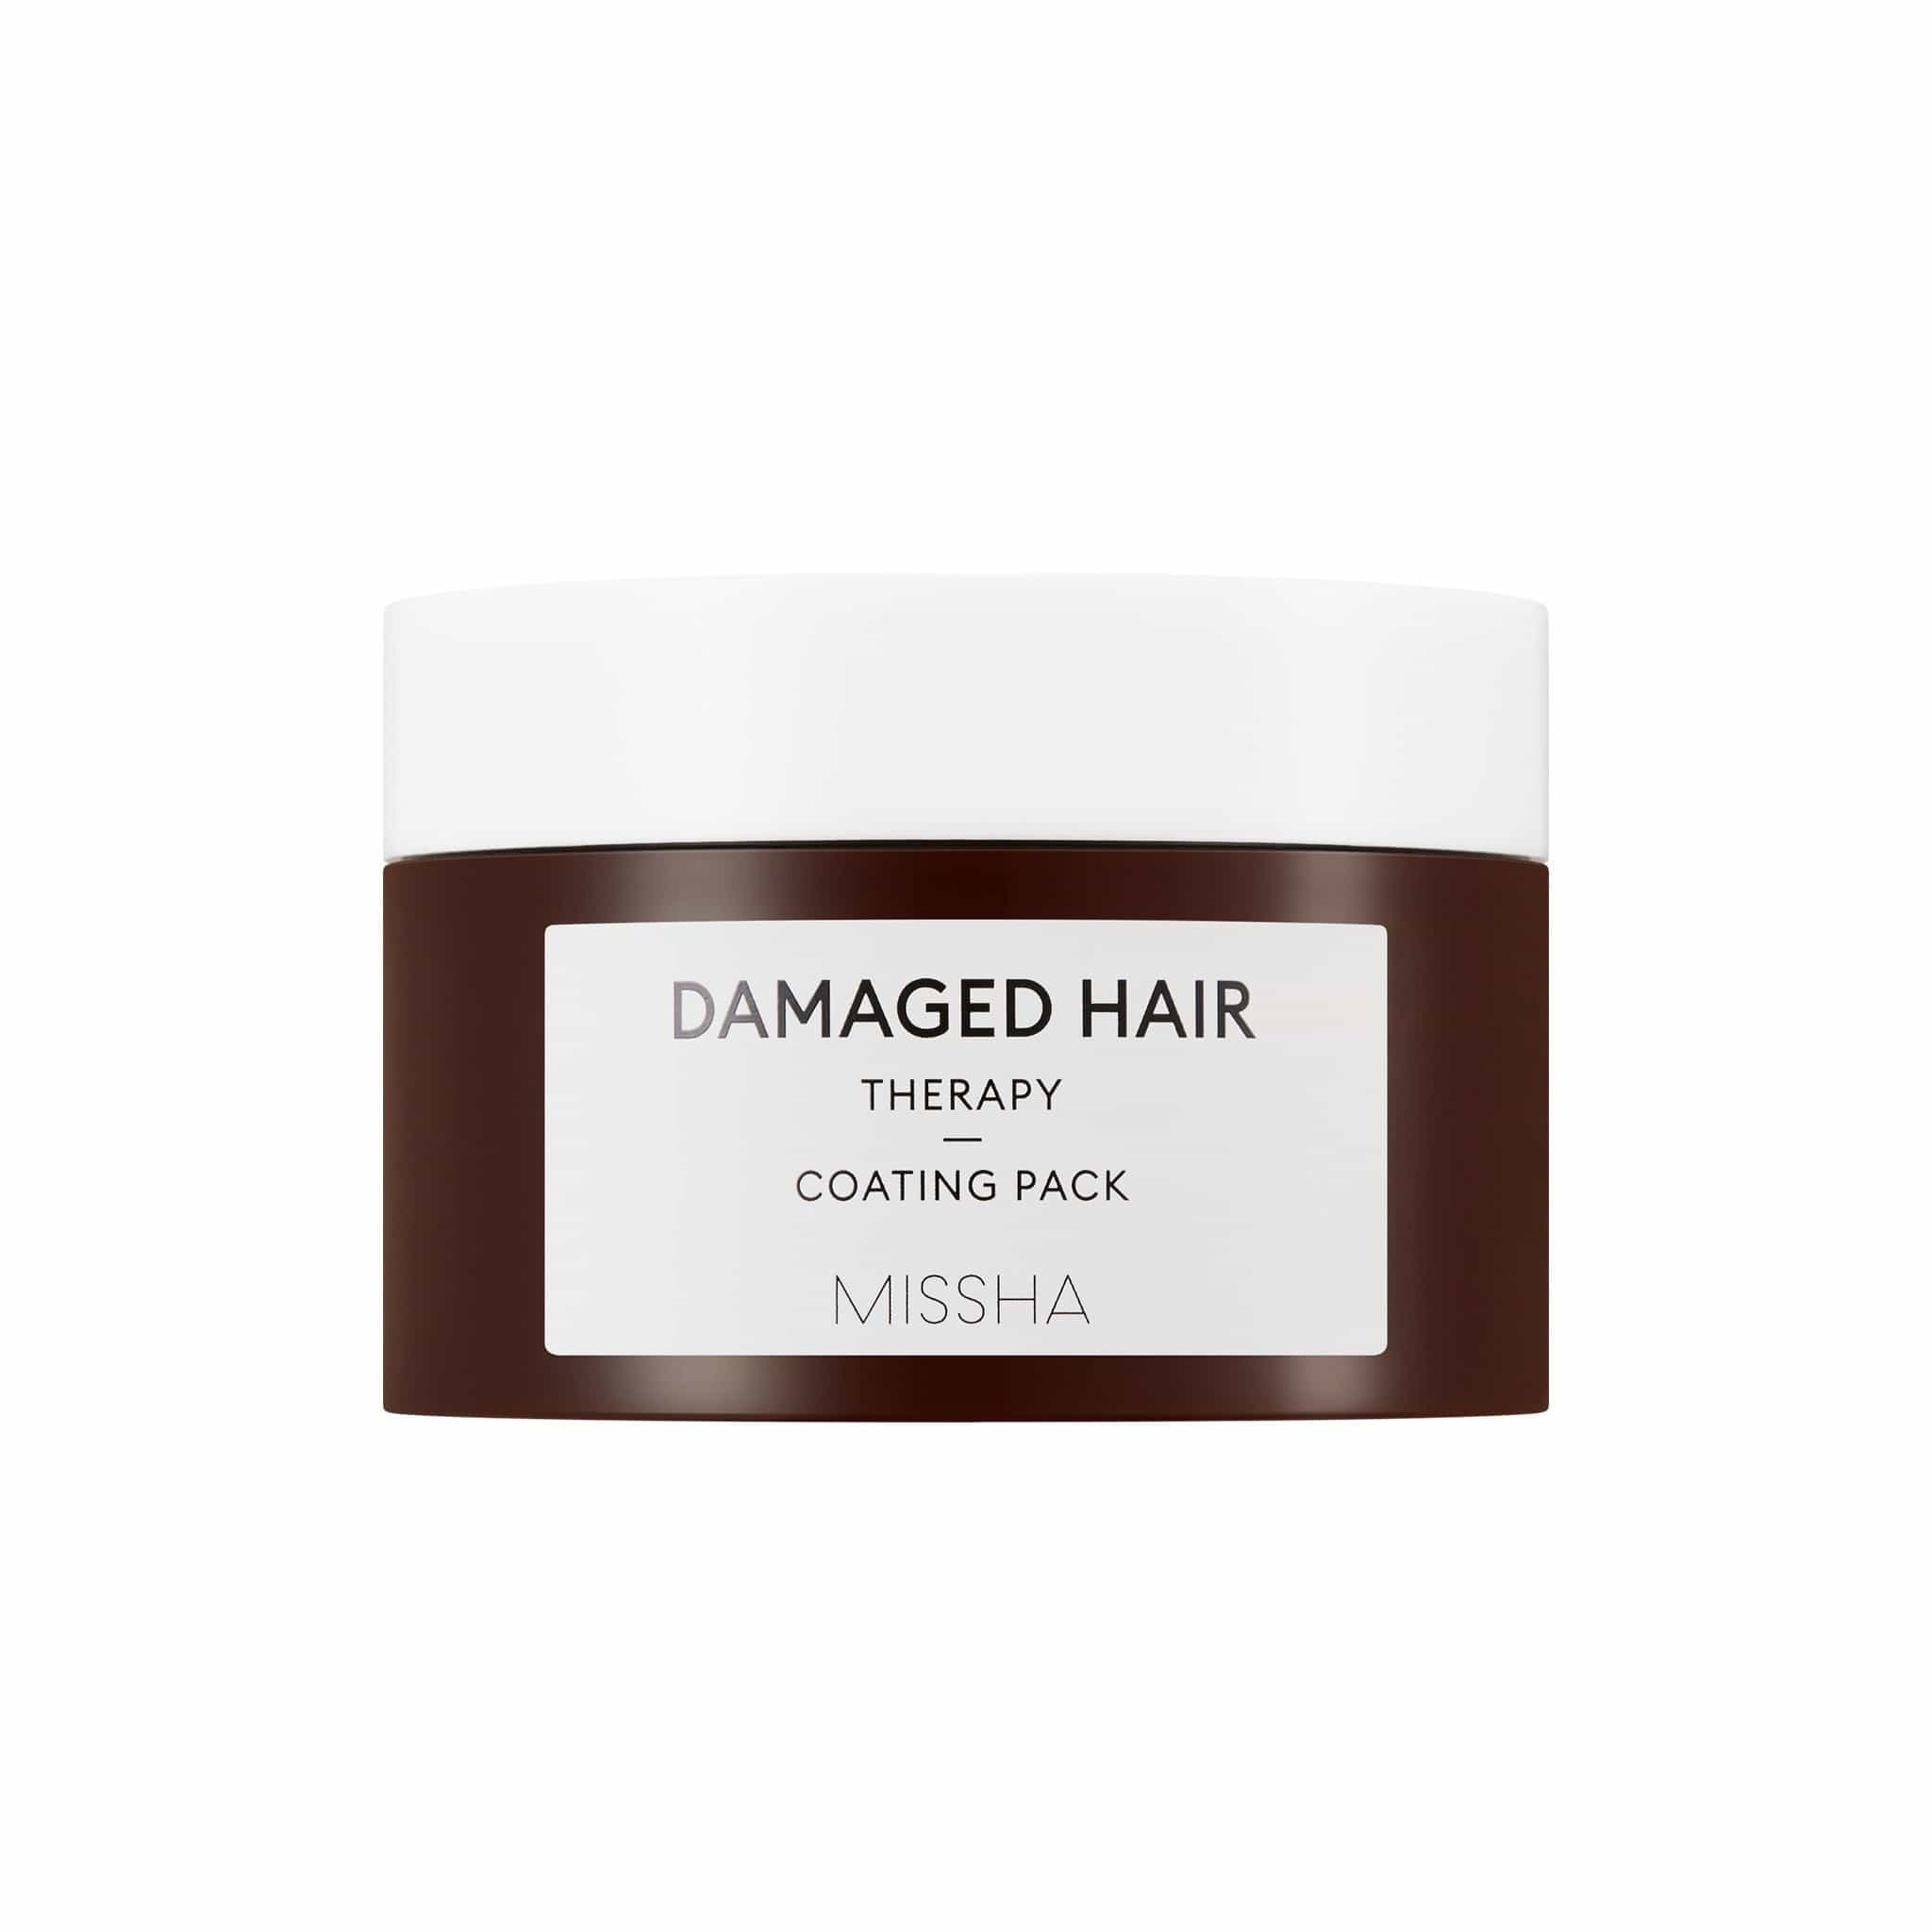 DAMAGED HAIR THERAPY COATING PACK - MISSHA